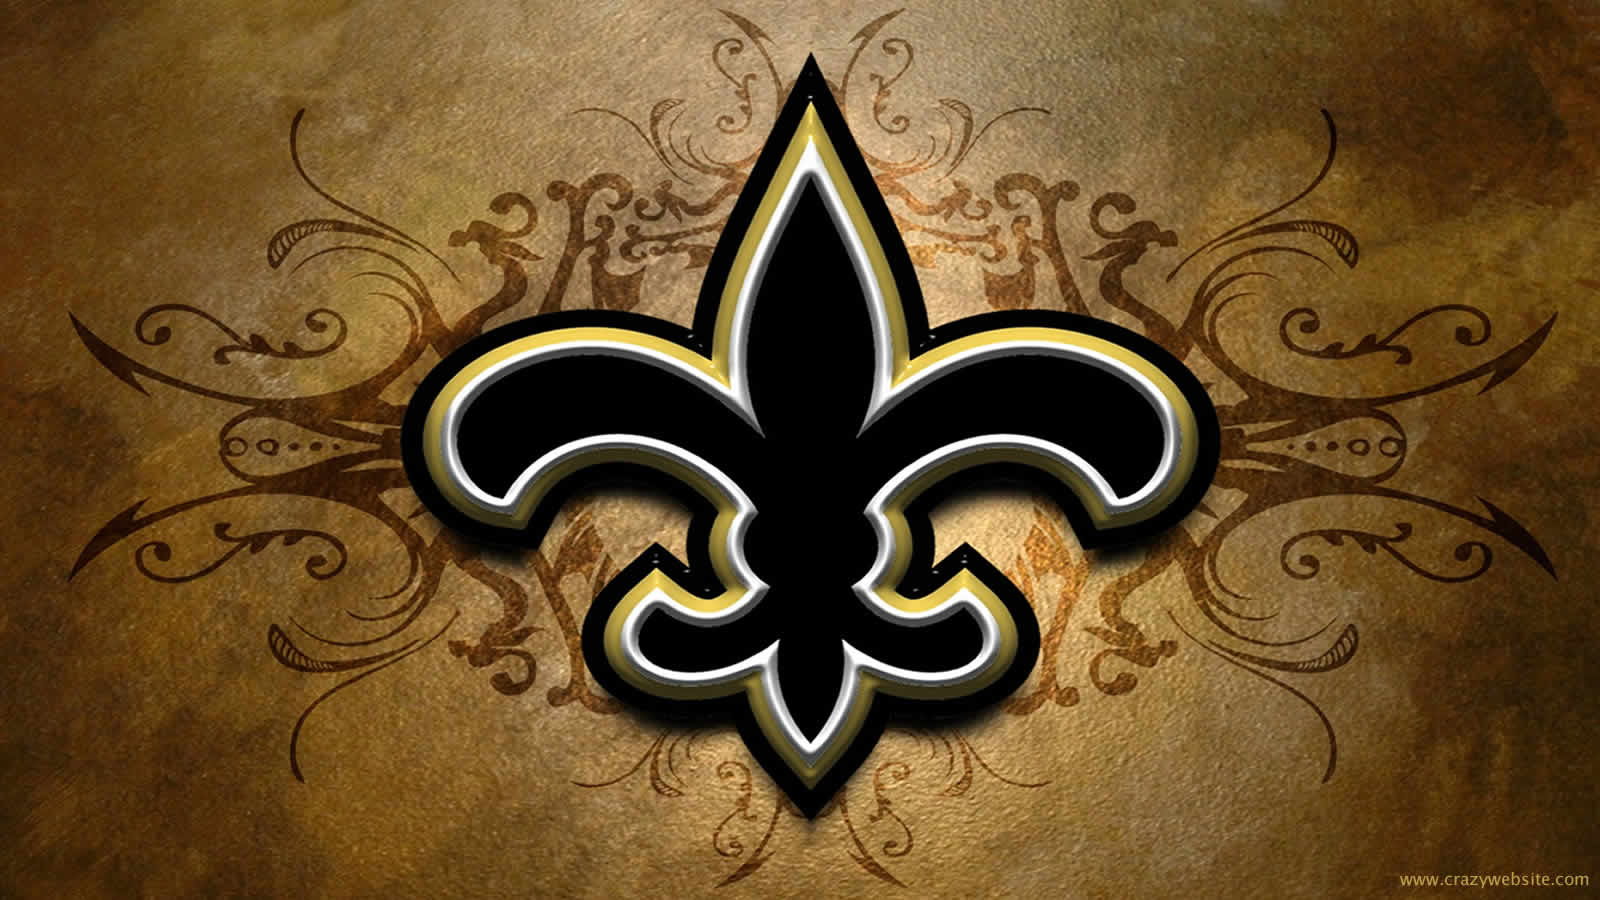 New Orleans Saints NFL football team logo wallpaper click thumbnail 1600x900